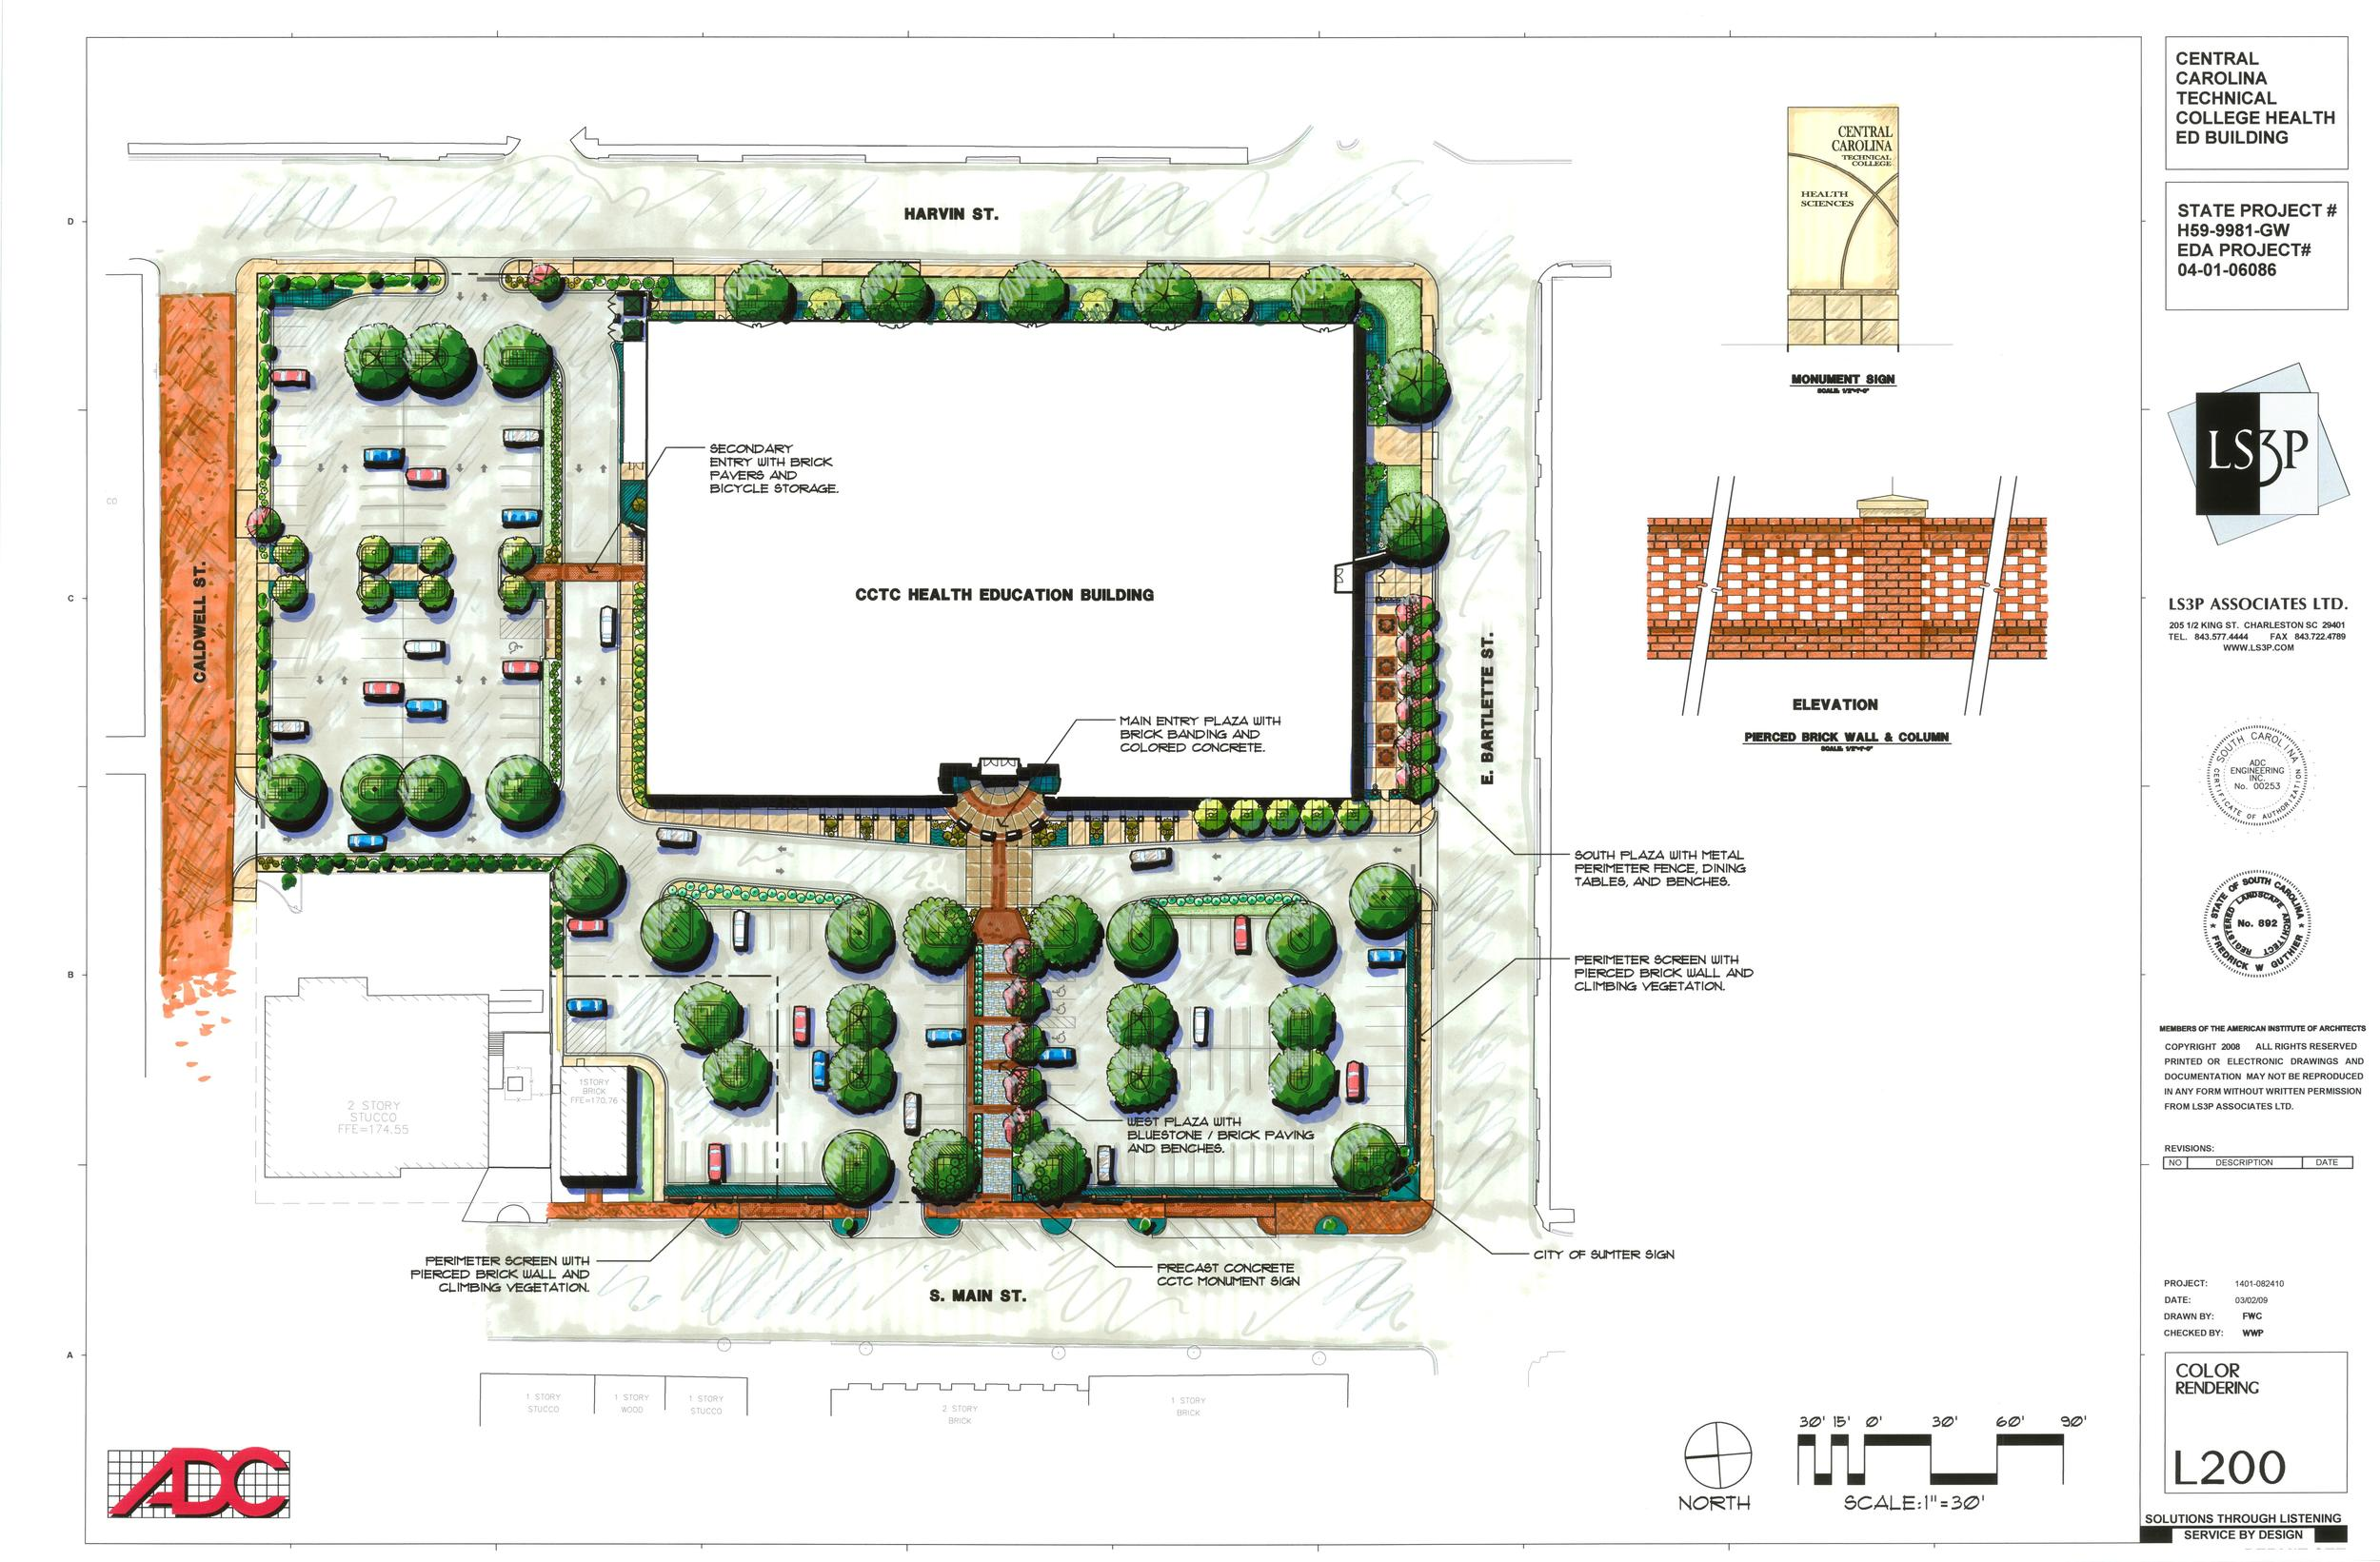 ADC 08183.CCTC.color rendering.JPG